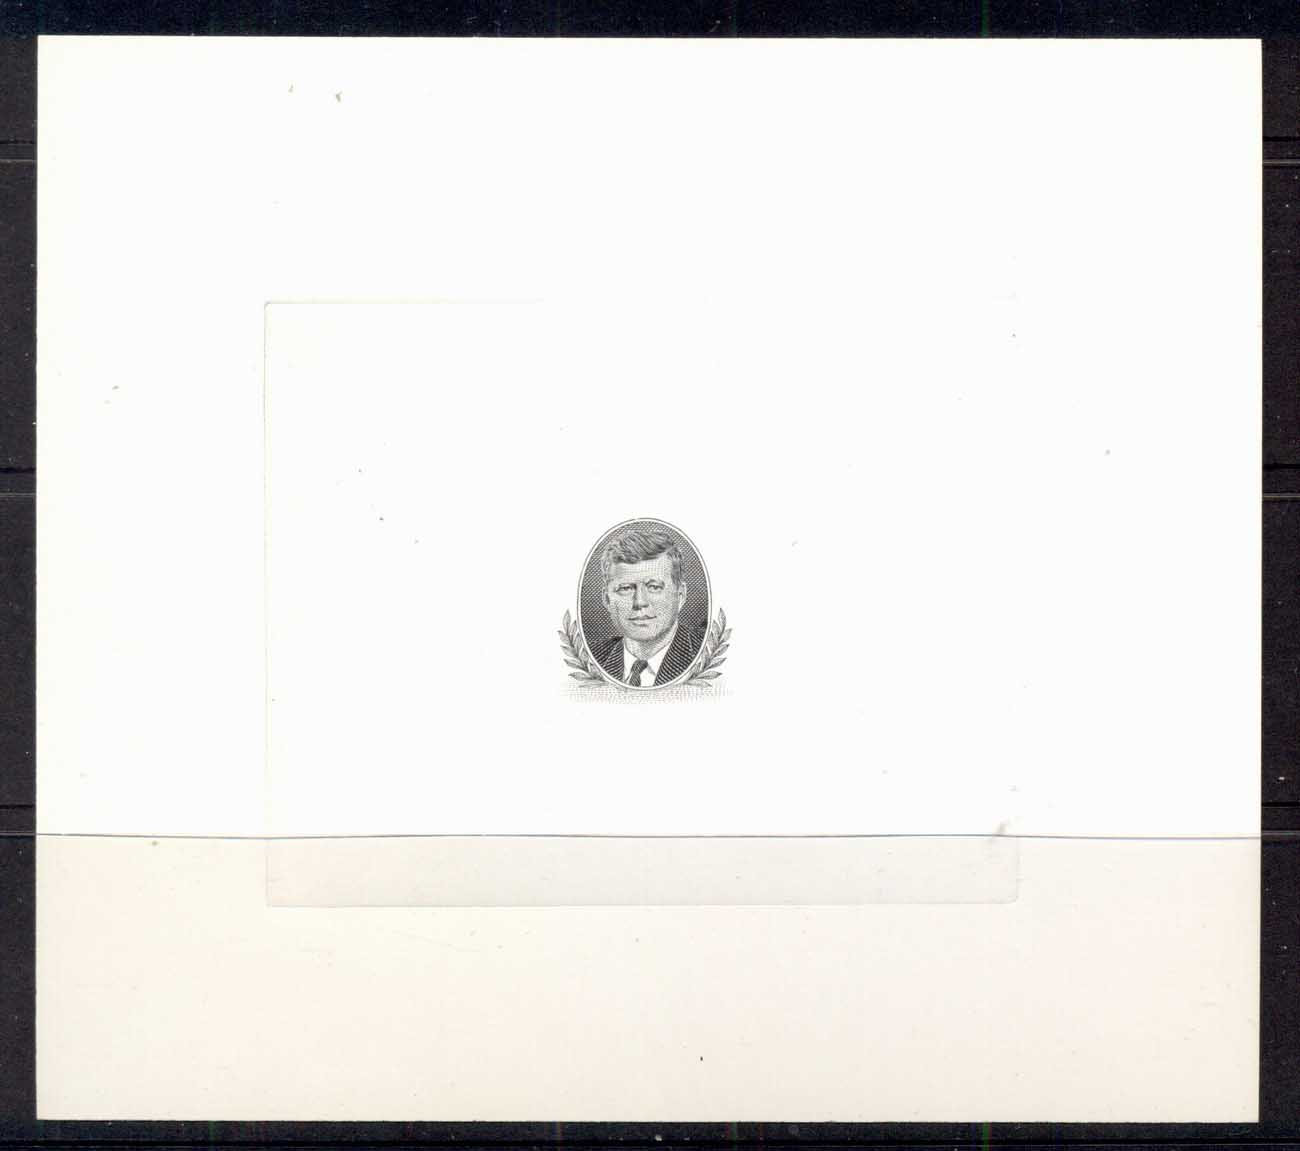 Country unknown 1967 c. JFK Kennedy vignette proof on glazed card MUH